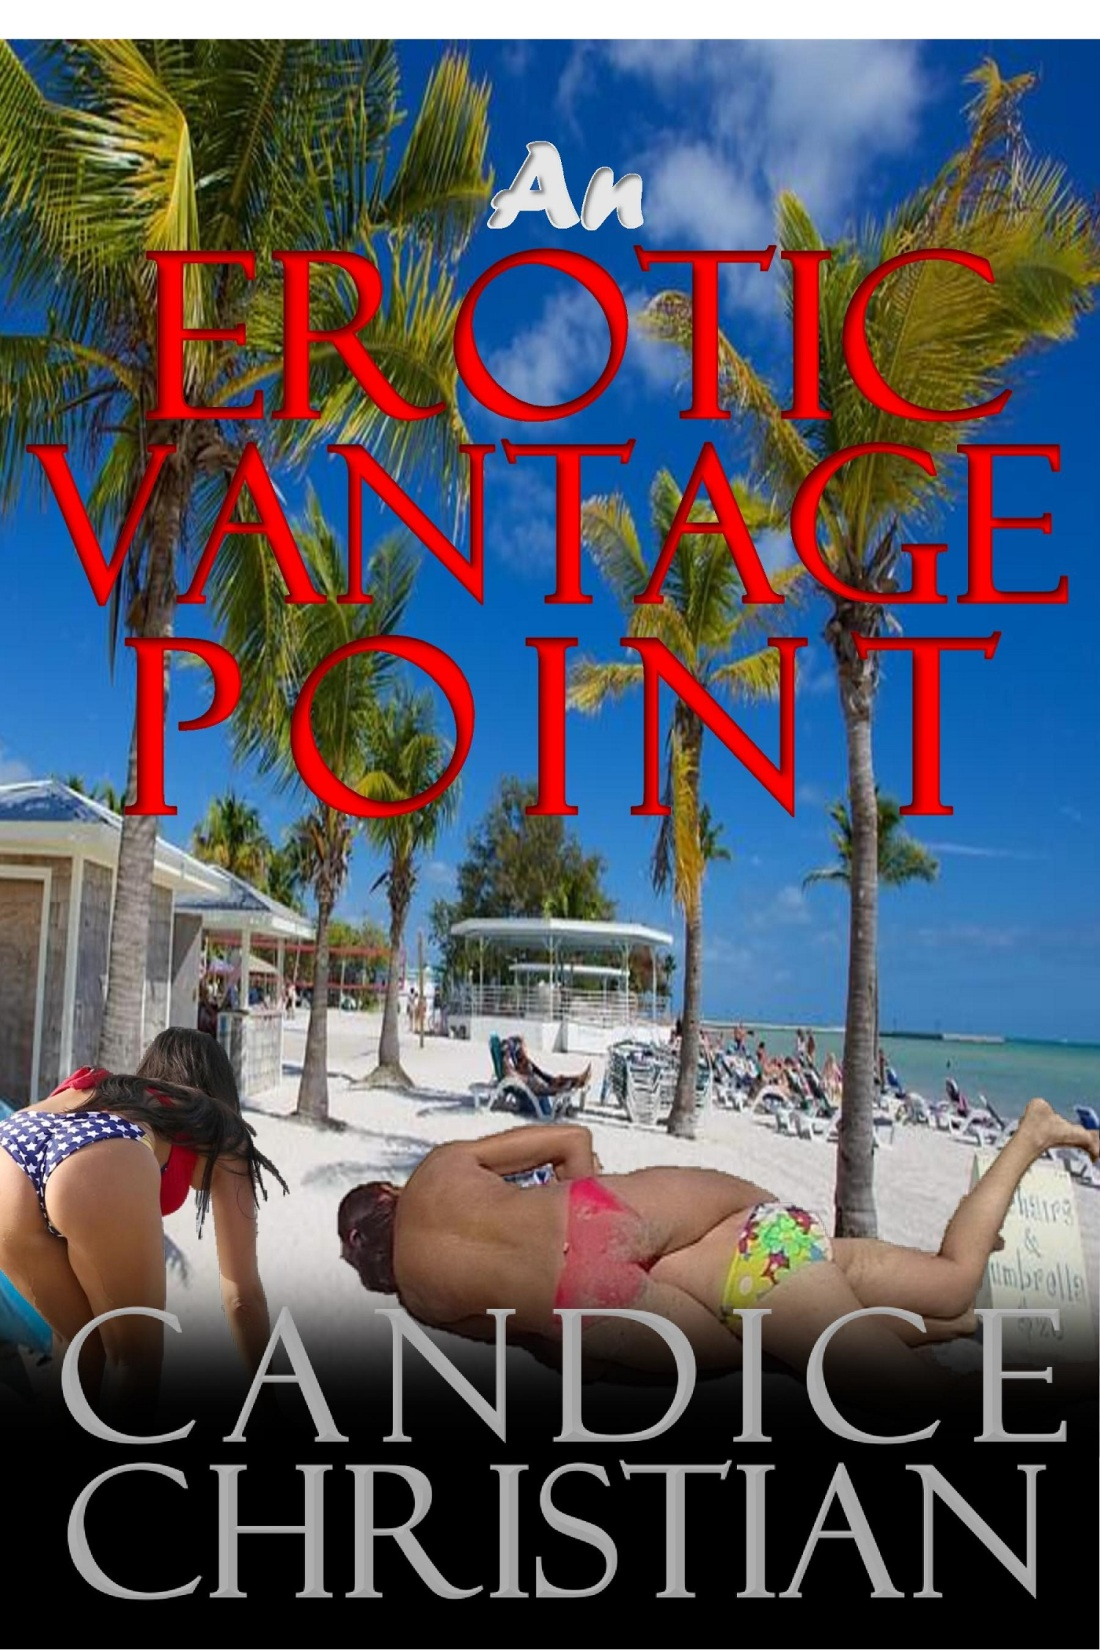 AN EROTIC VANTAGE POINT COVER-RESIZED